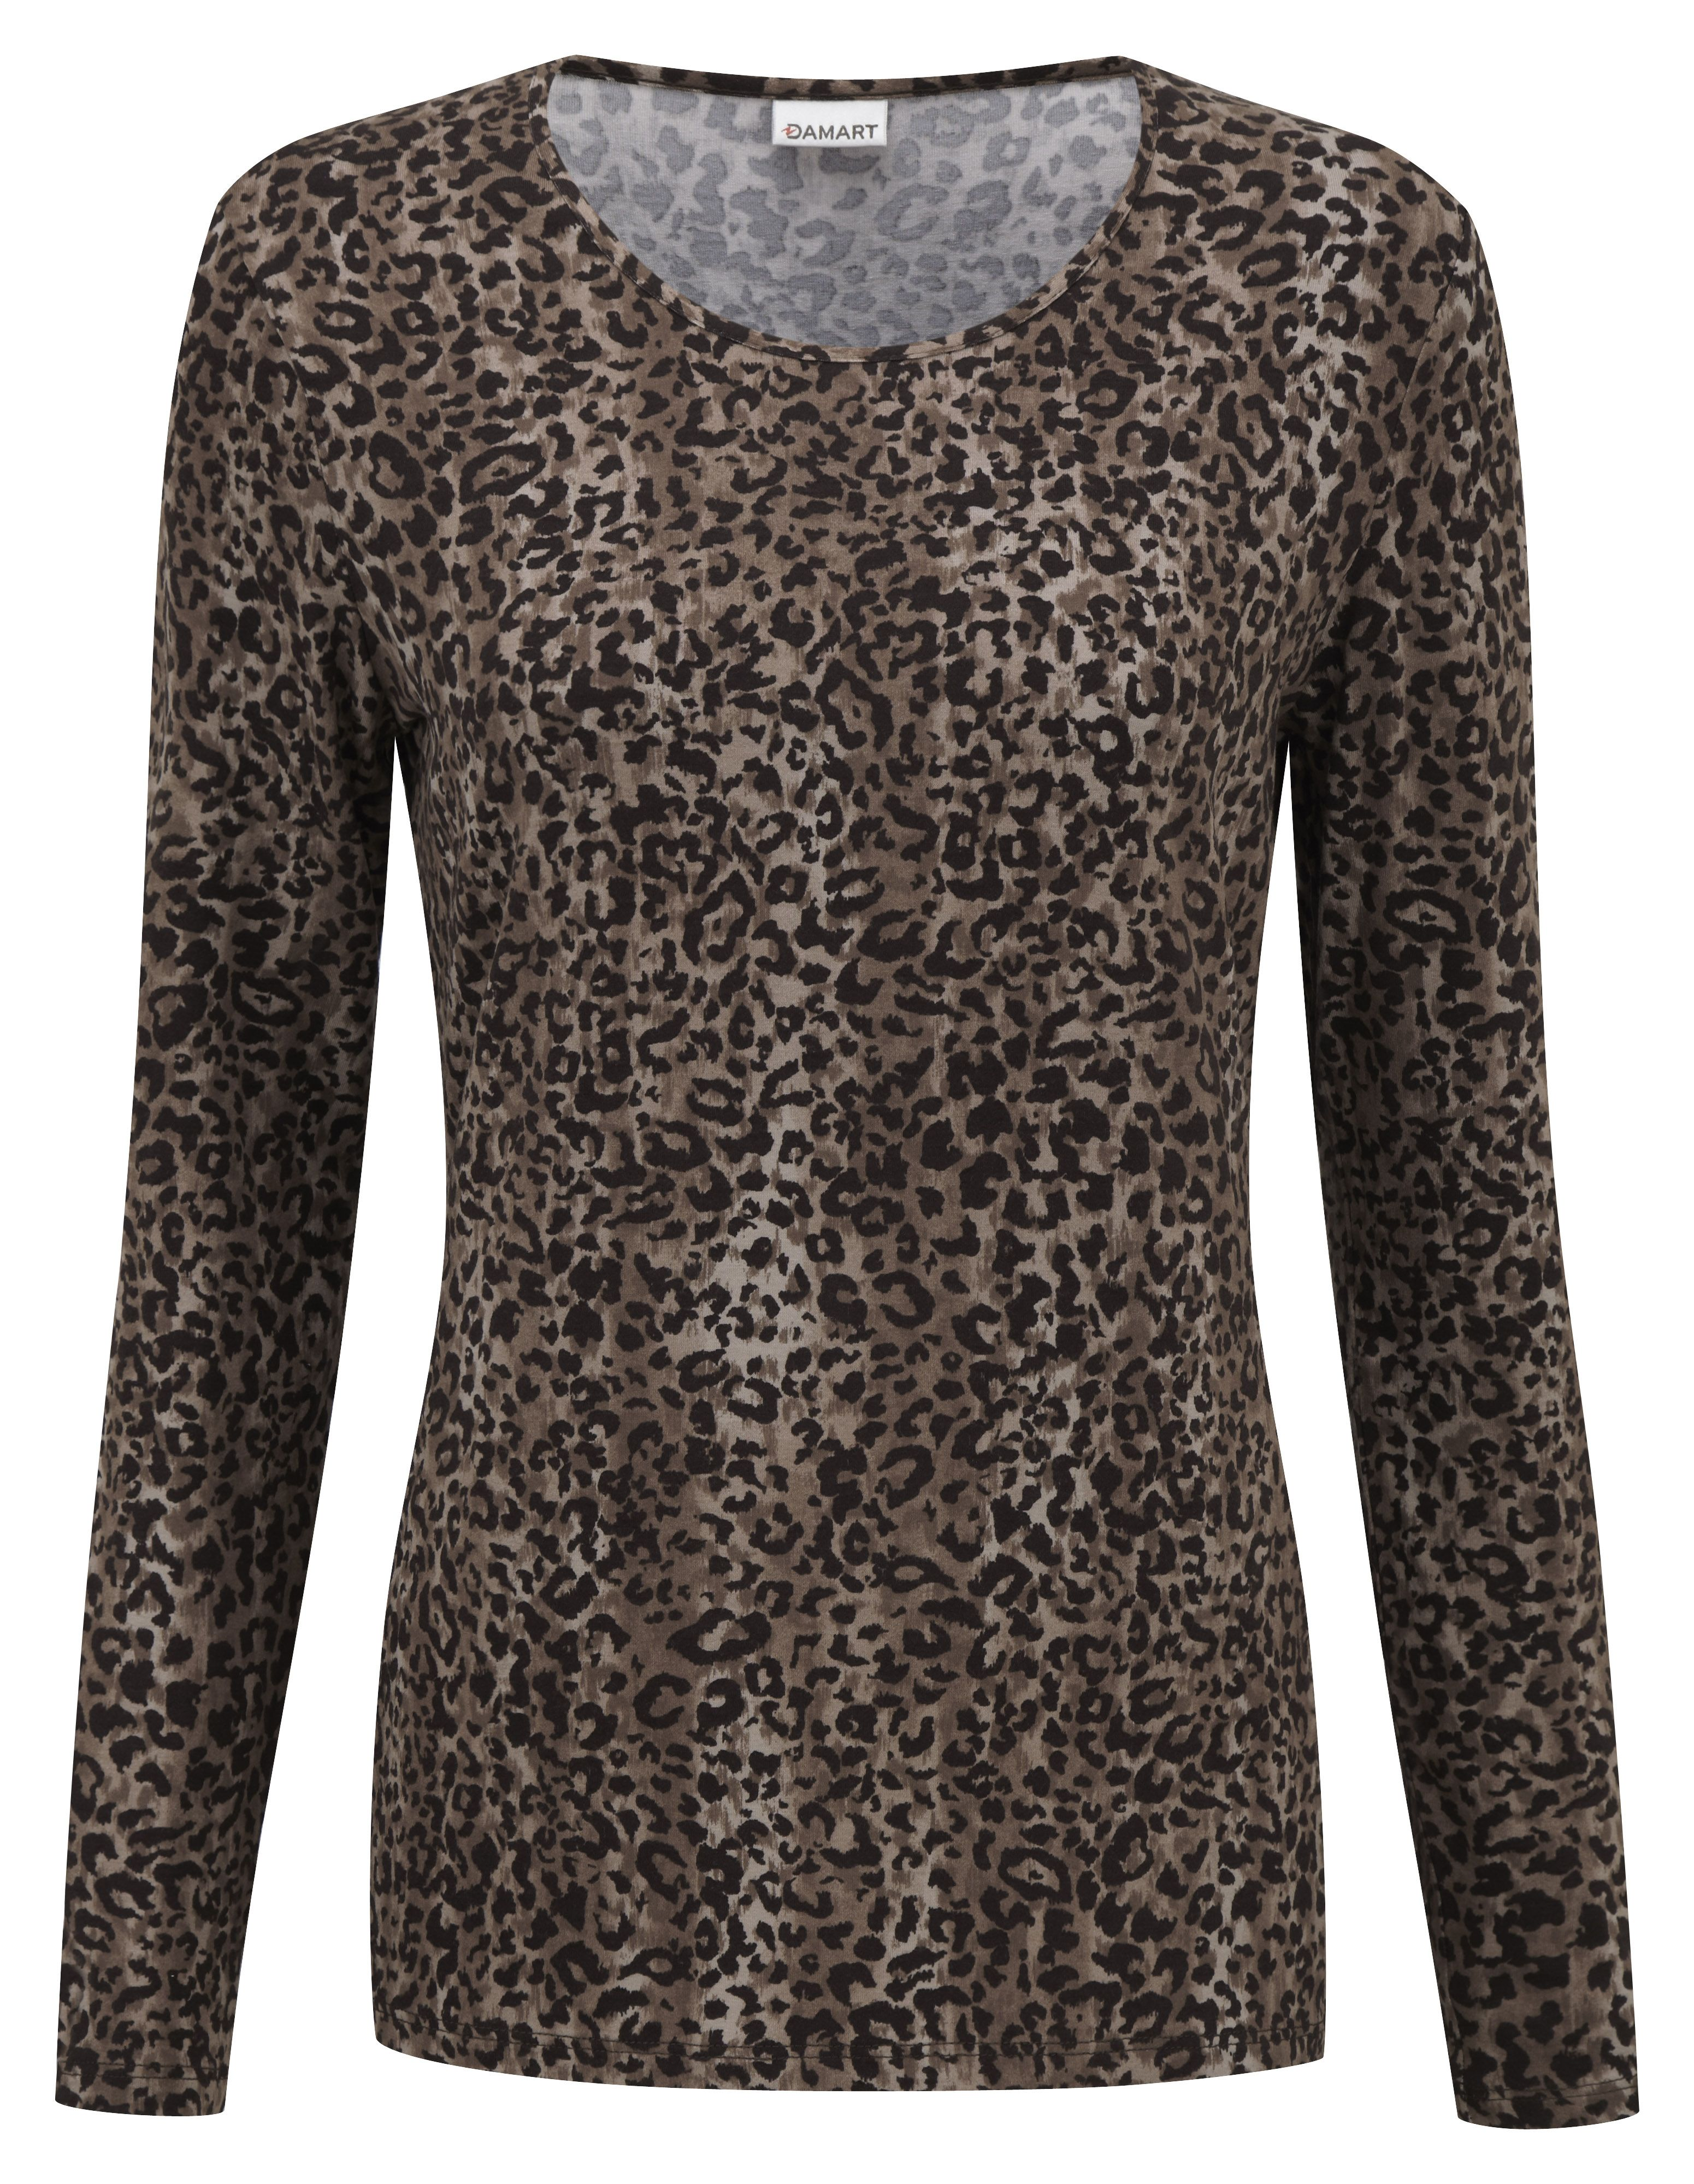 famous brand 100% genuine in stock Damart beige printed top, product code B507. www.damart.co ...